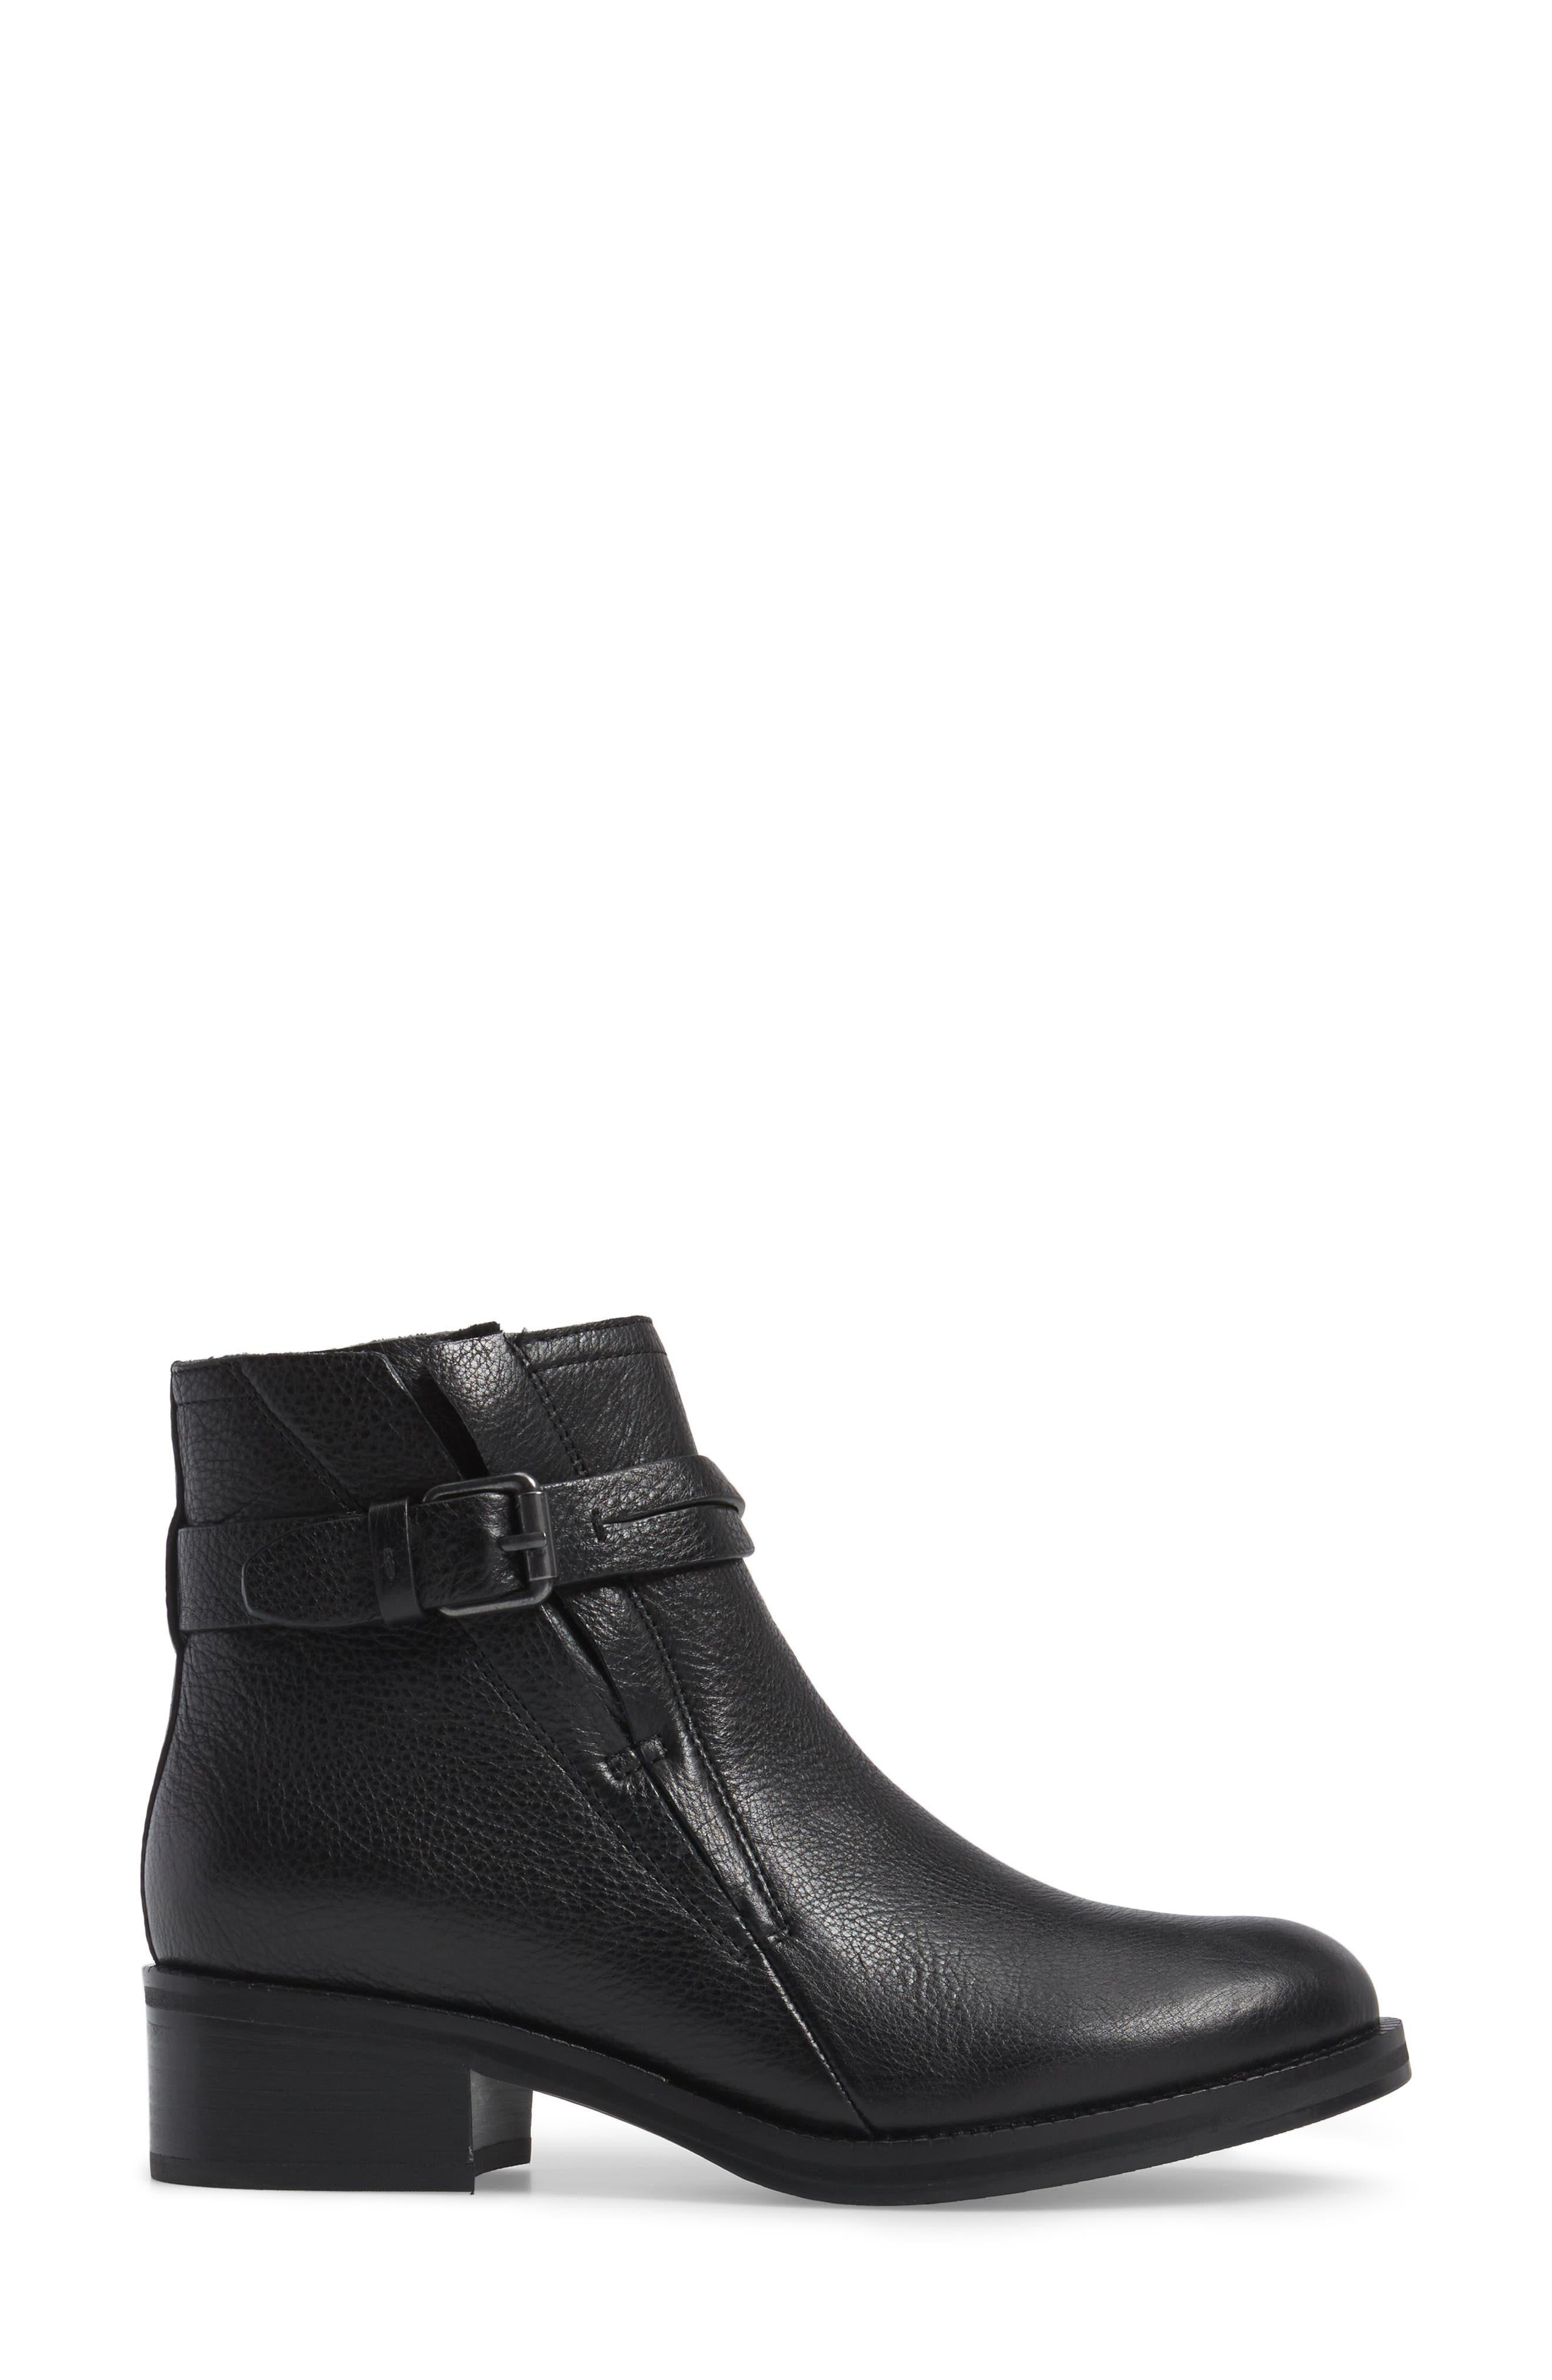 GENTLE SOULS BY KENNETH COLE, Percy Bootie, Alternate thumbnail 3, color, BLACK LEATHER